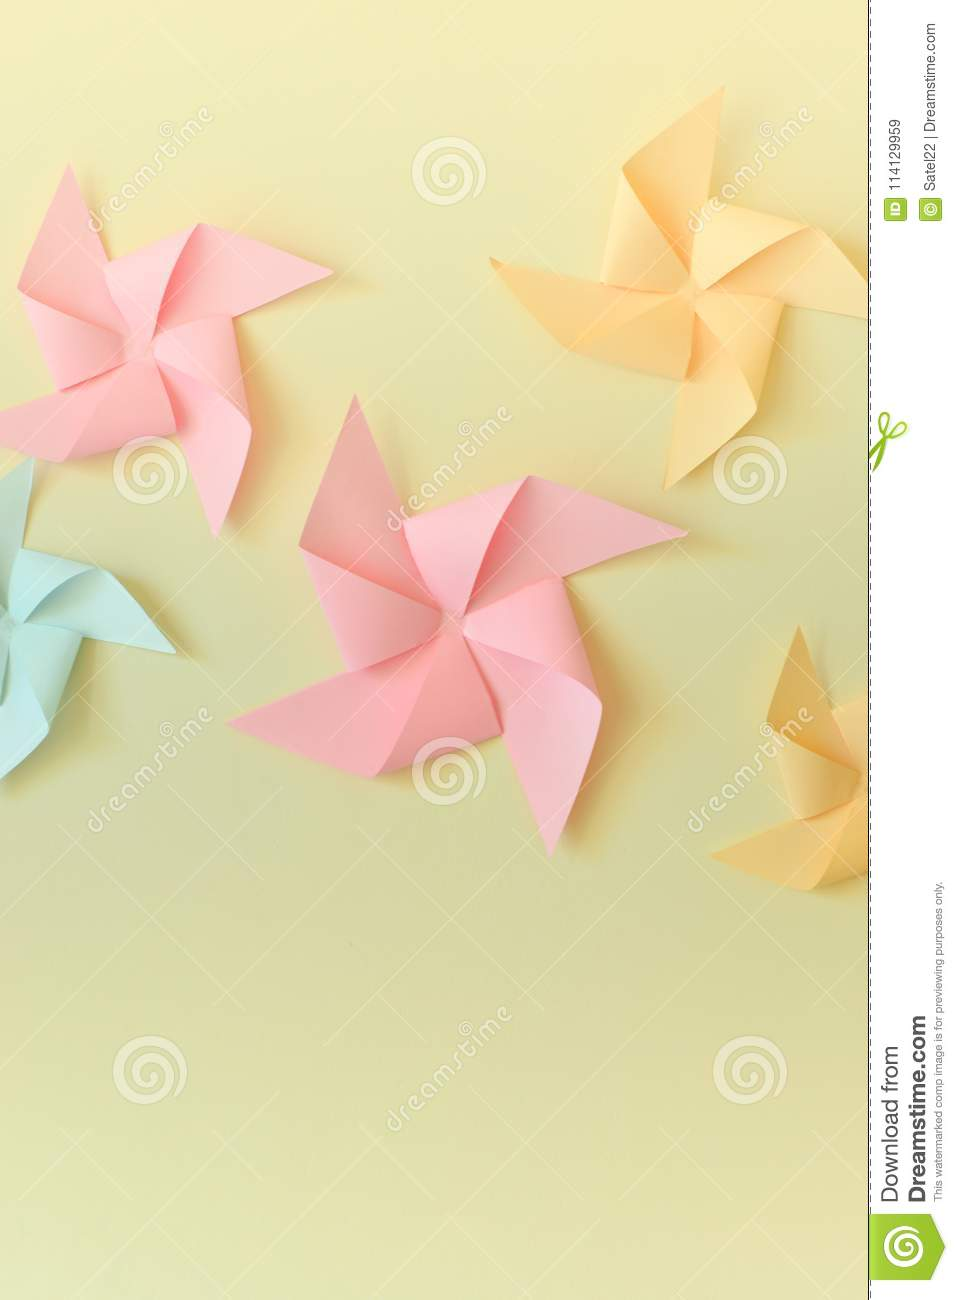 Origami Windmill Samples And Decoration Stock Image Image Of Wall